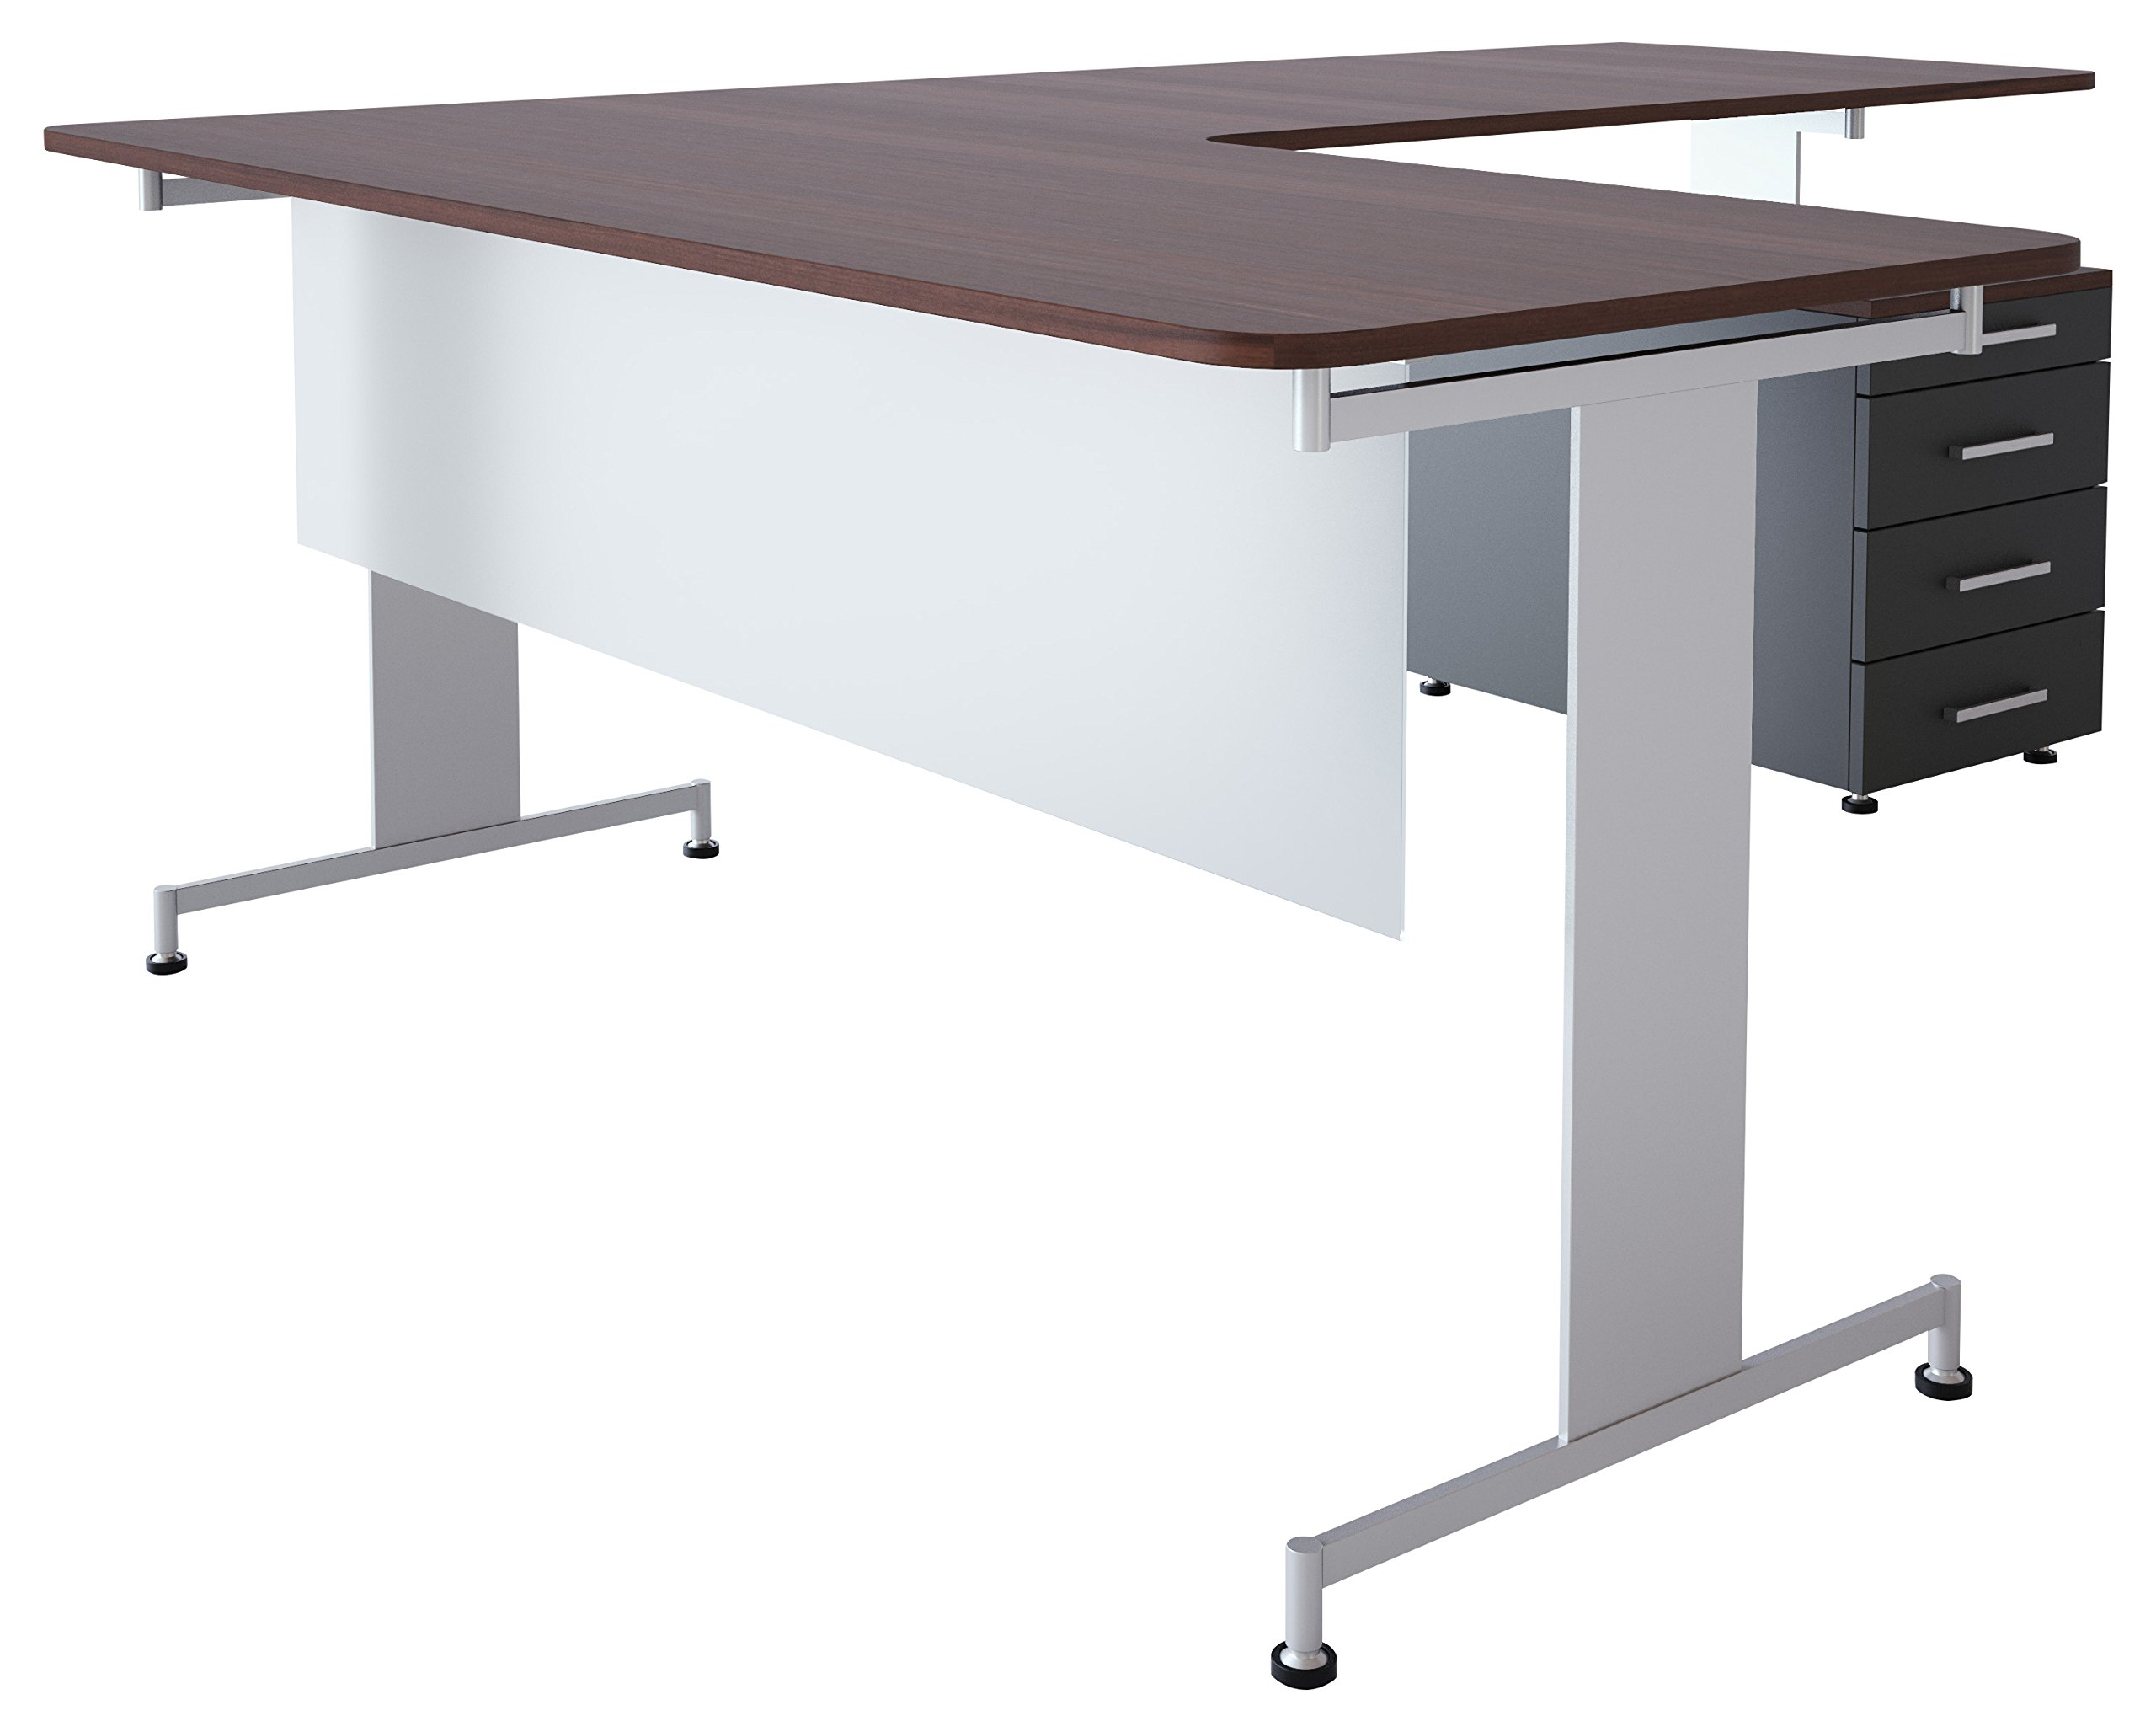 Obex 18X66FA-L-XX-MP 18'' Frosted Acrylic Desk and Table Mounted Modesty Panel, Light Brown Frame, 18'' x 66''